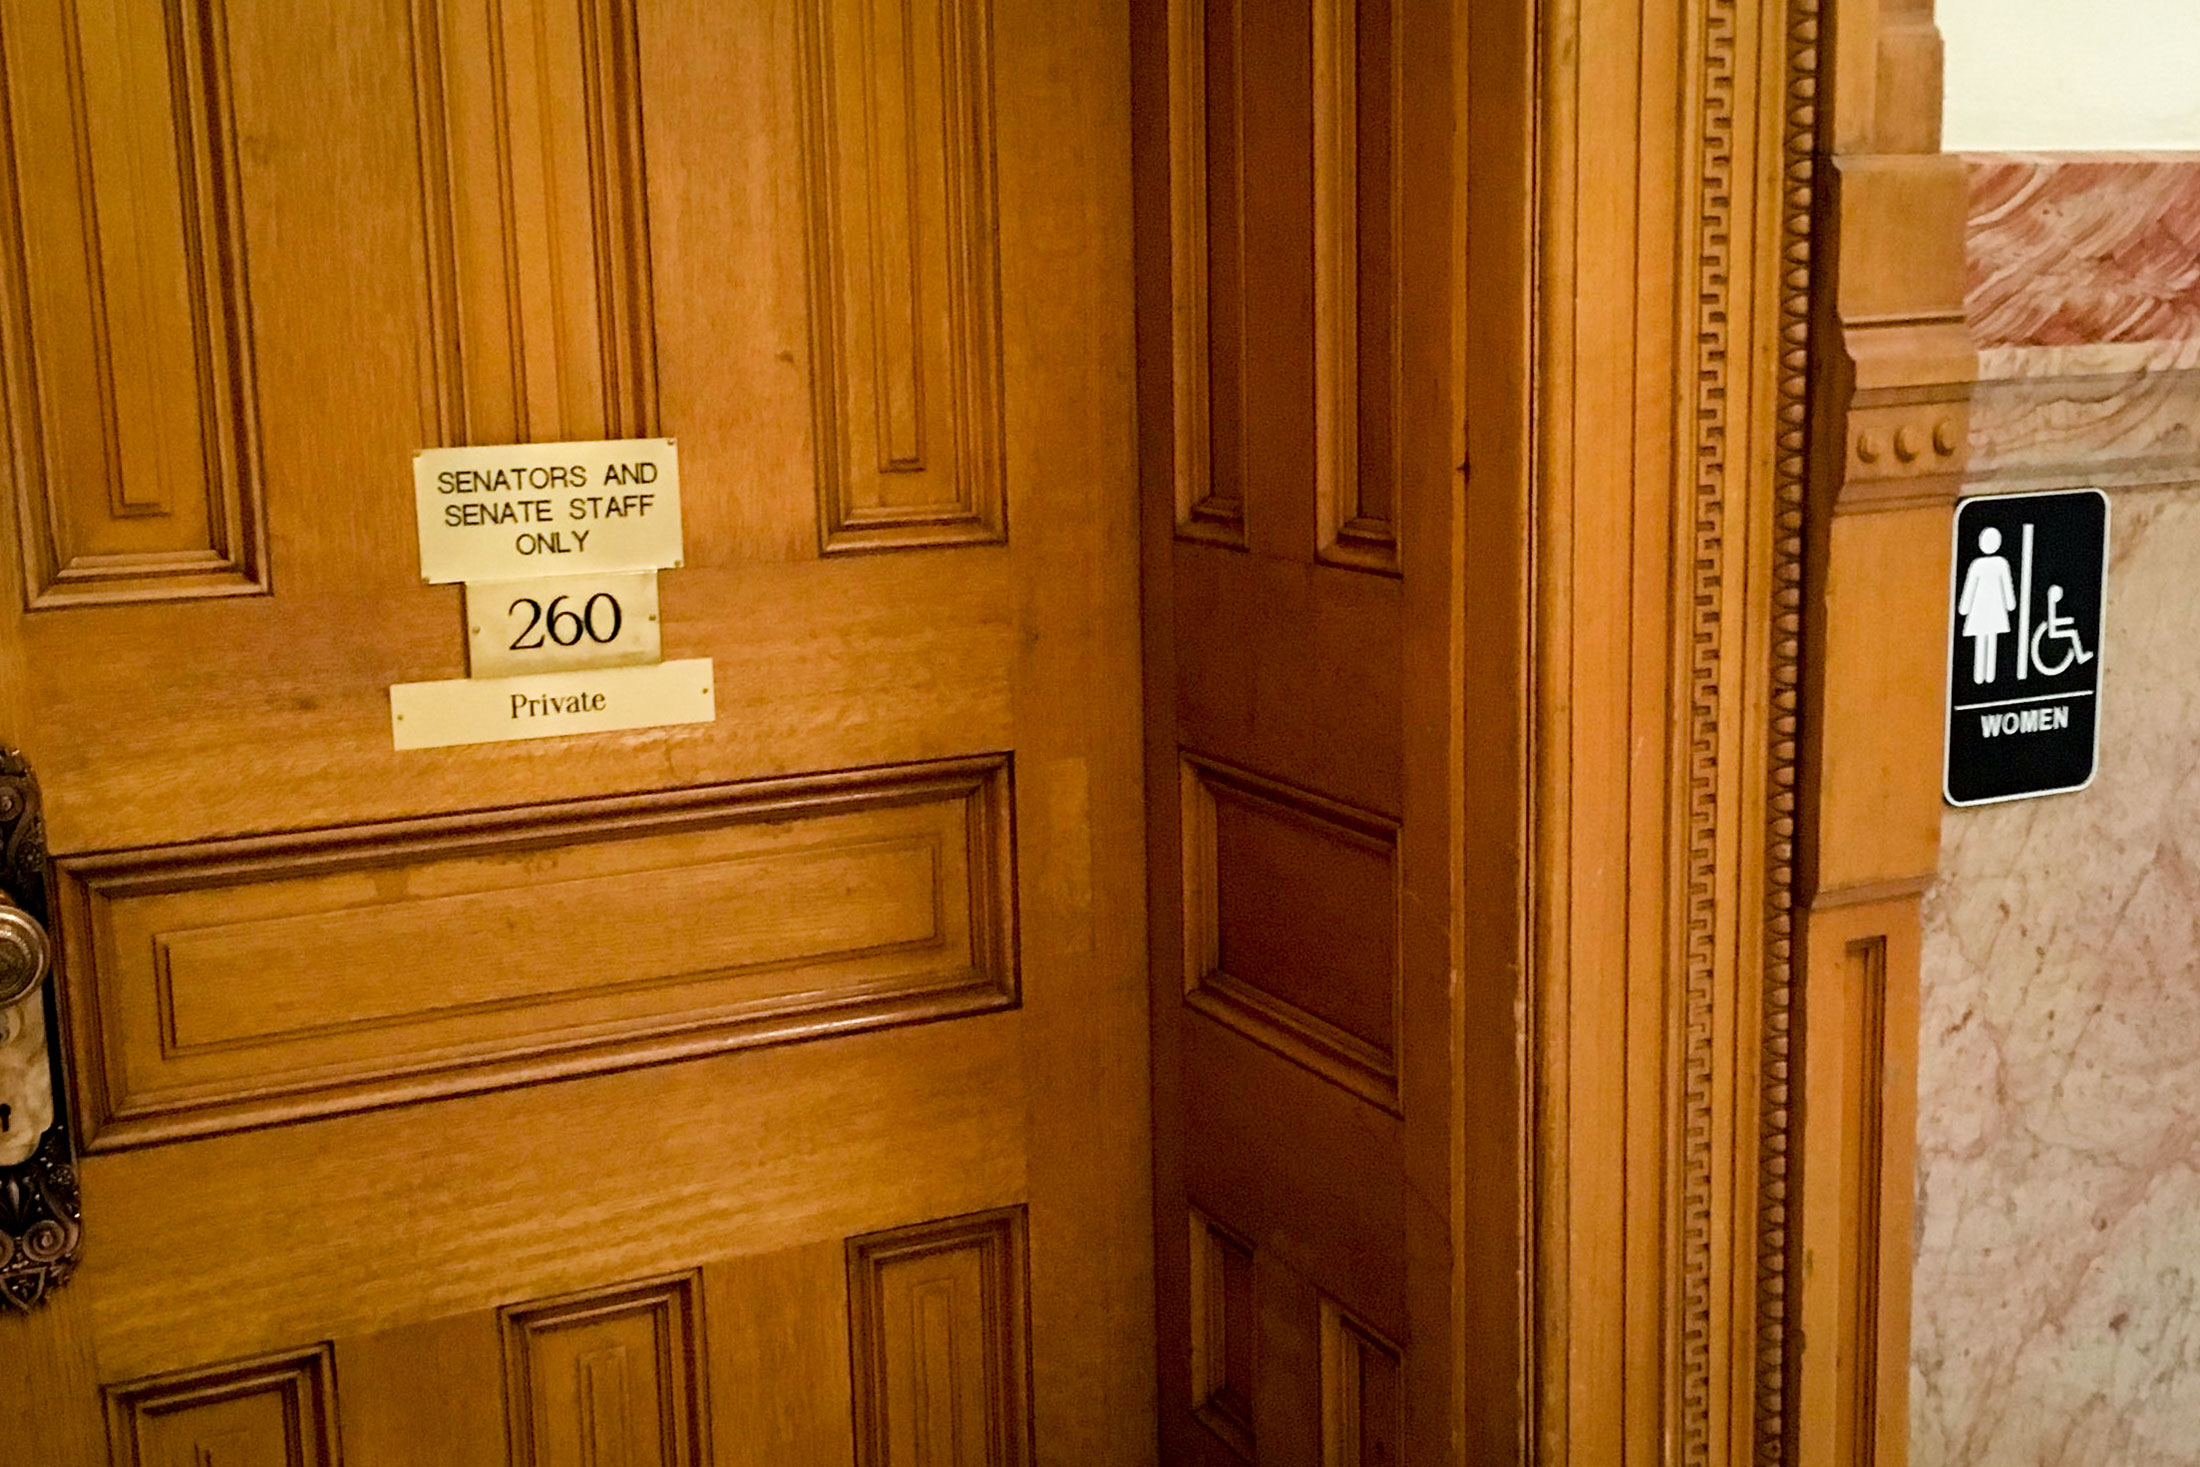 <p>Previously, this door did not have a sign that indicated it led to a women's restroom. Officials installed the standard placard to the right of the door that now properly labels its designation.</p>